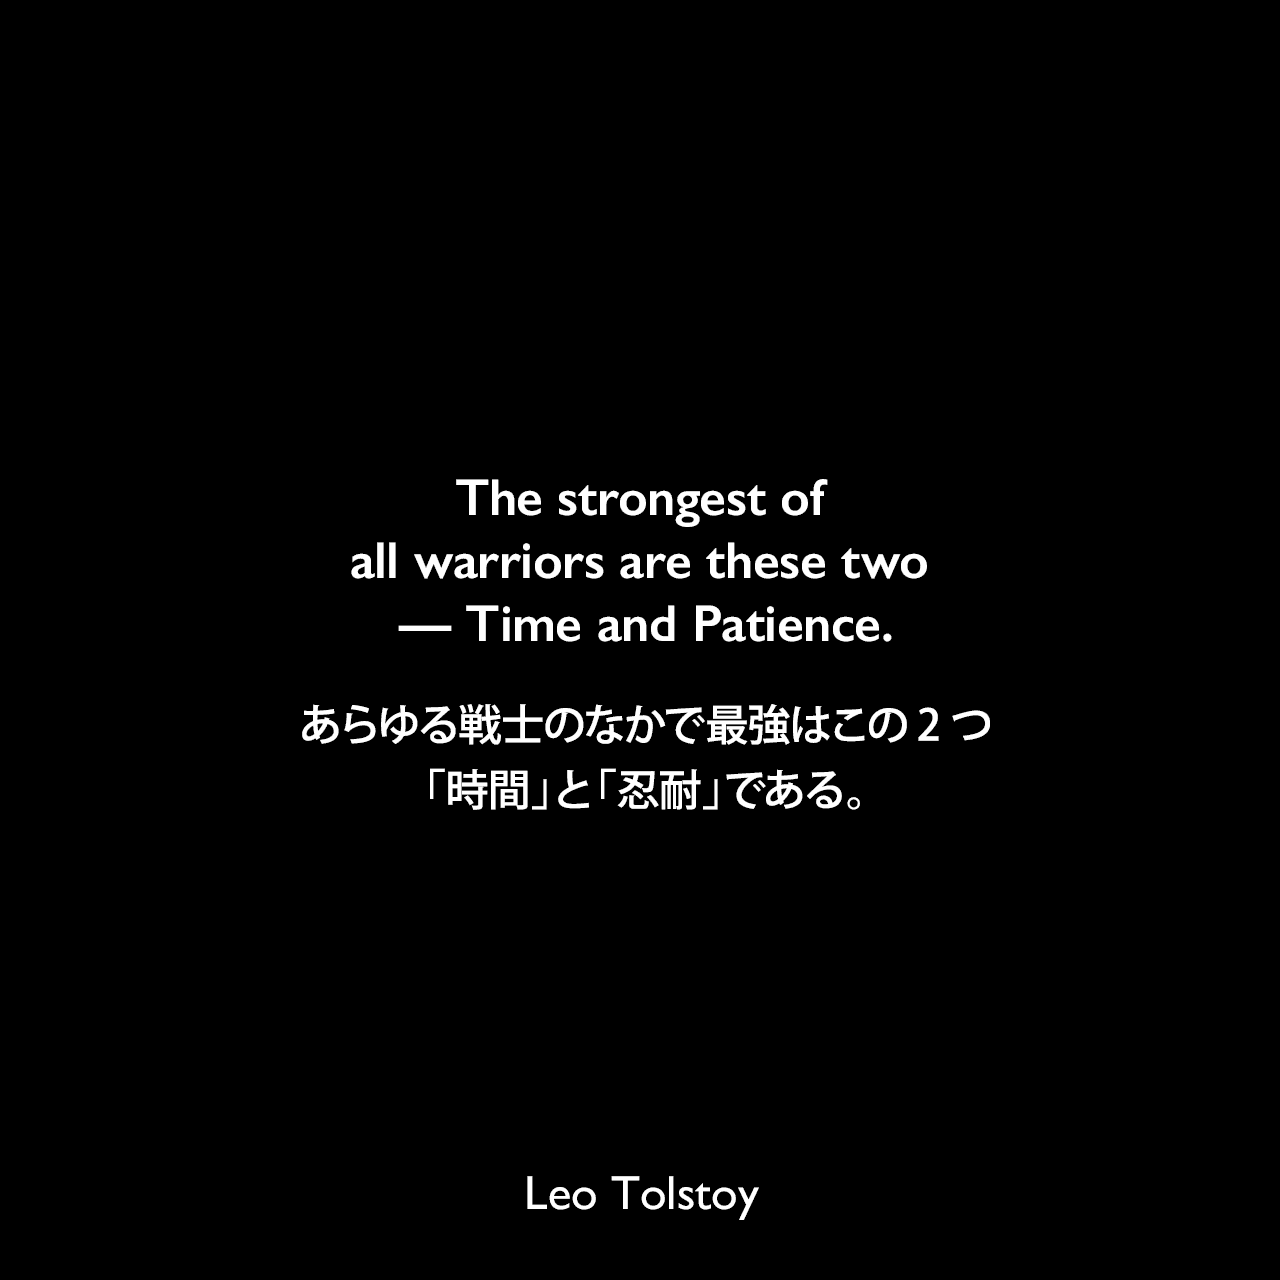 The strongest of all warriors are these two — Time and Patience.あらゆる戦士のなかで最強はこの2つ、「時間」と「忍耐」である。- トルストイによる小説「戦争と平和」よりLeo Tolstoy